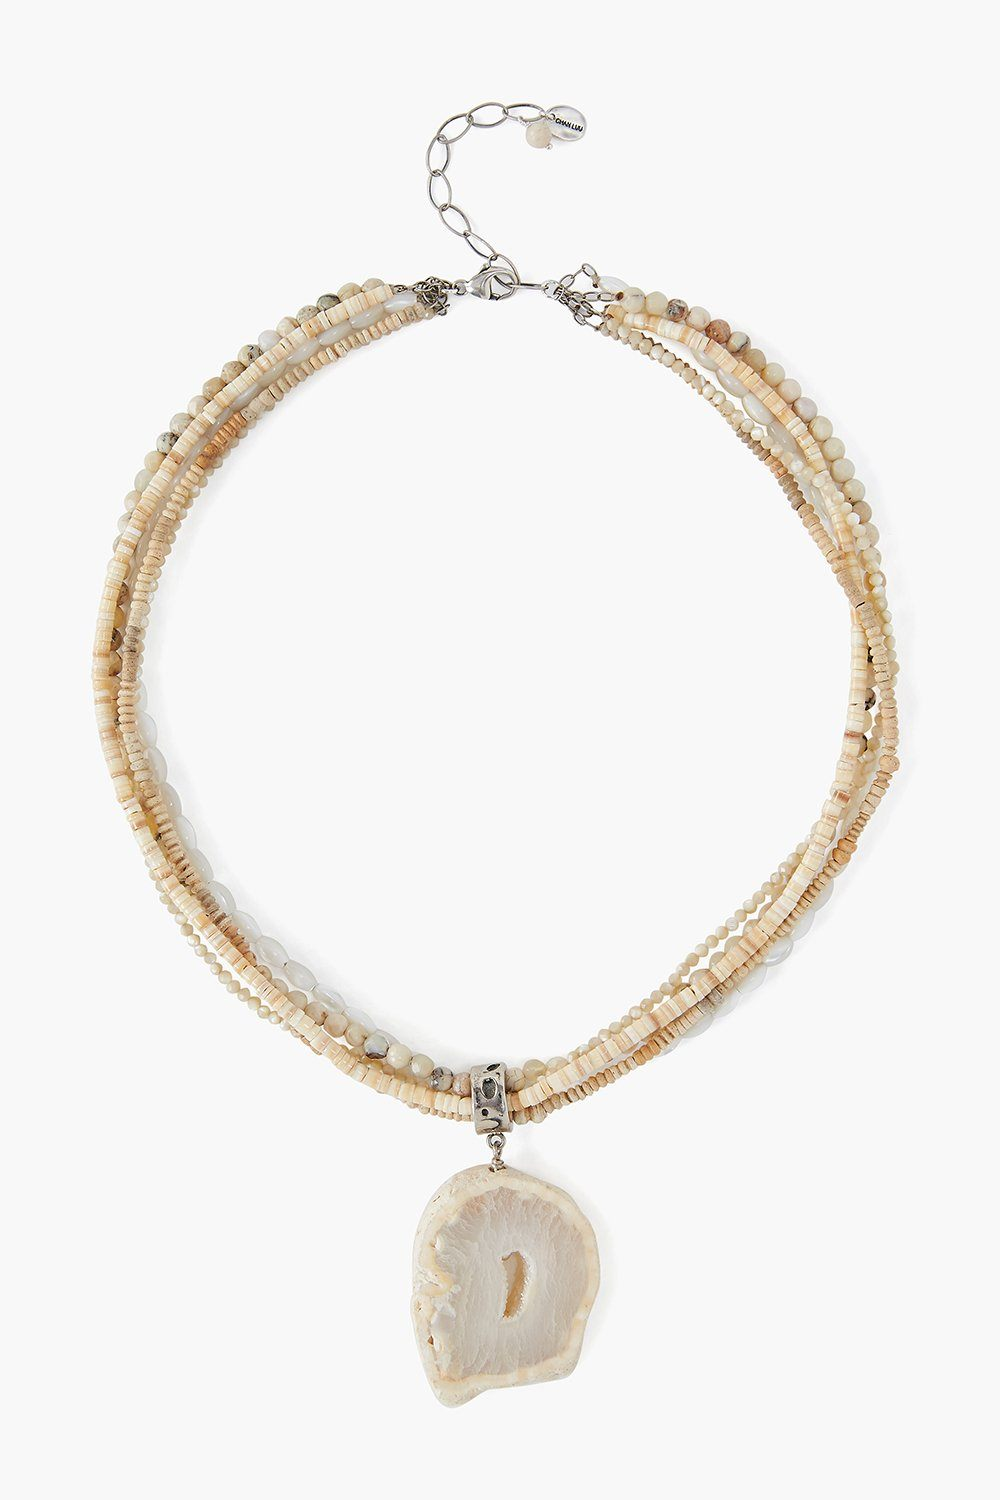 White Druzy Agate Multi Strand Necklace